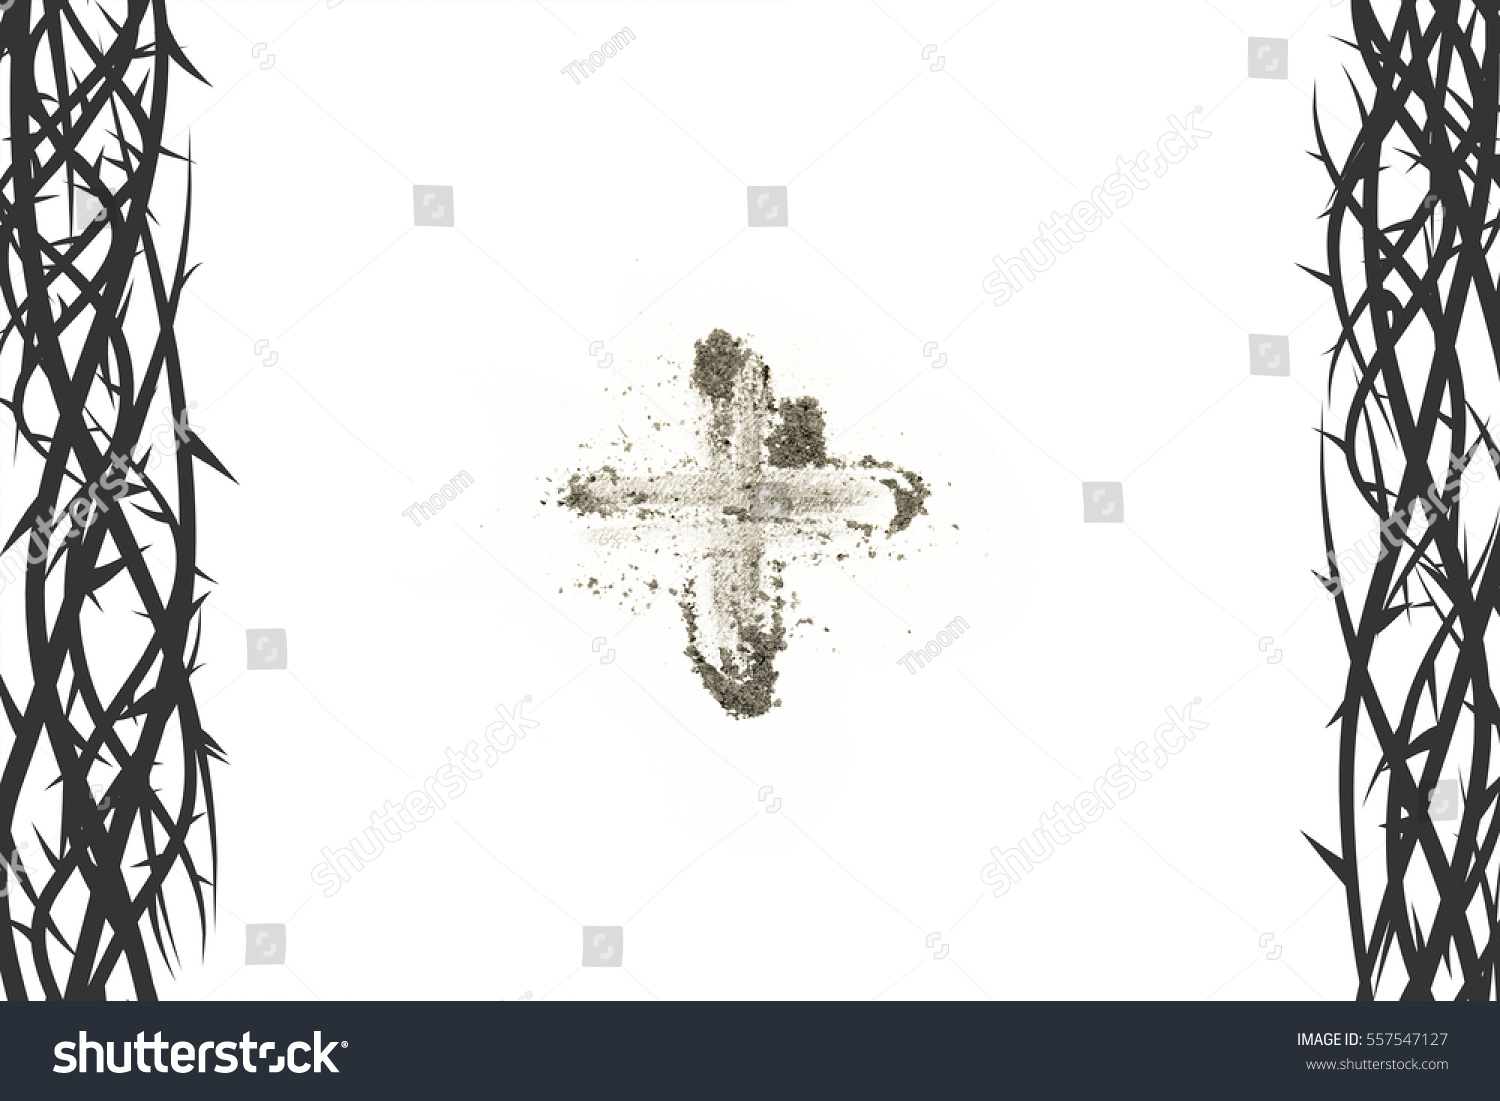 Cross made ashes ash wednesday lent stock illustration 557547127 cross made of ashes ash wednesday lent season vintage abstract background with thorns frame buycottarizona